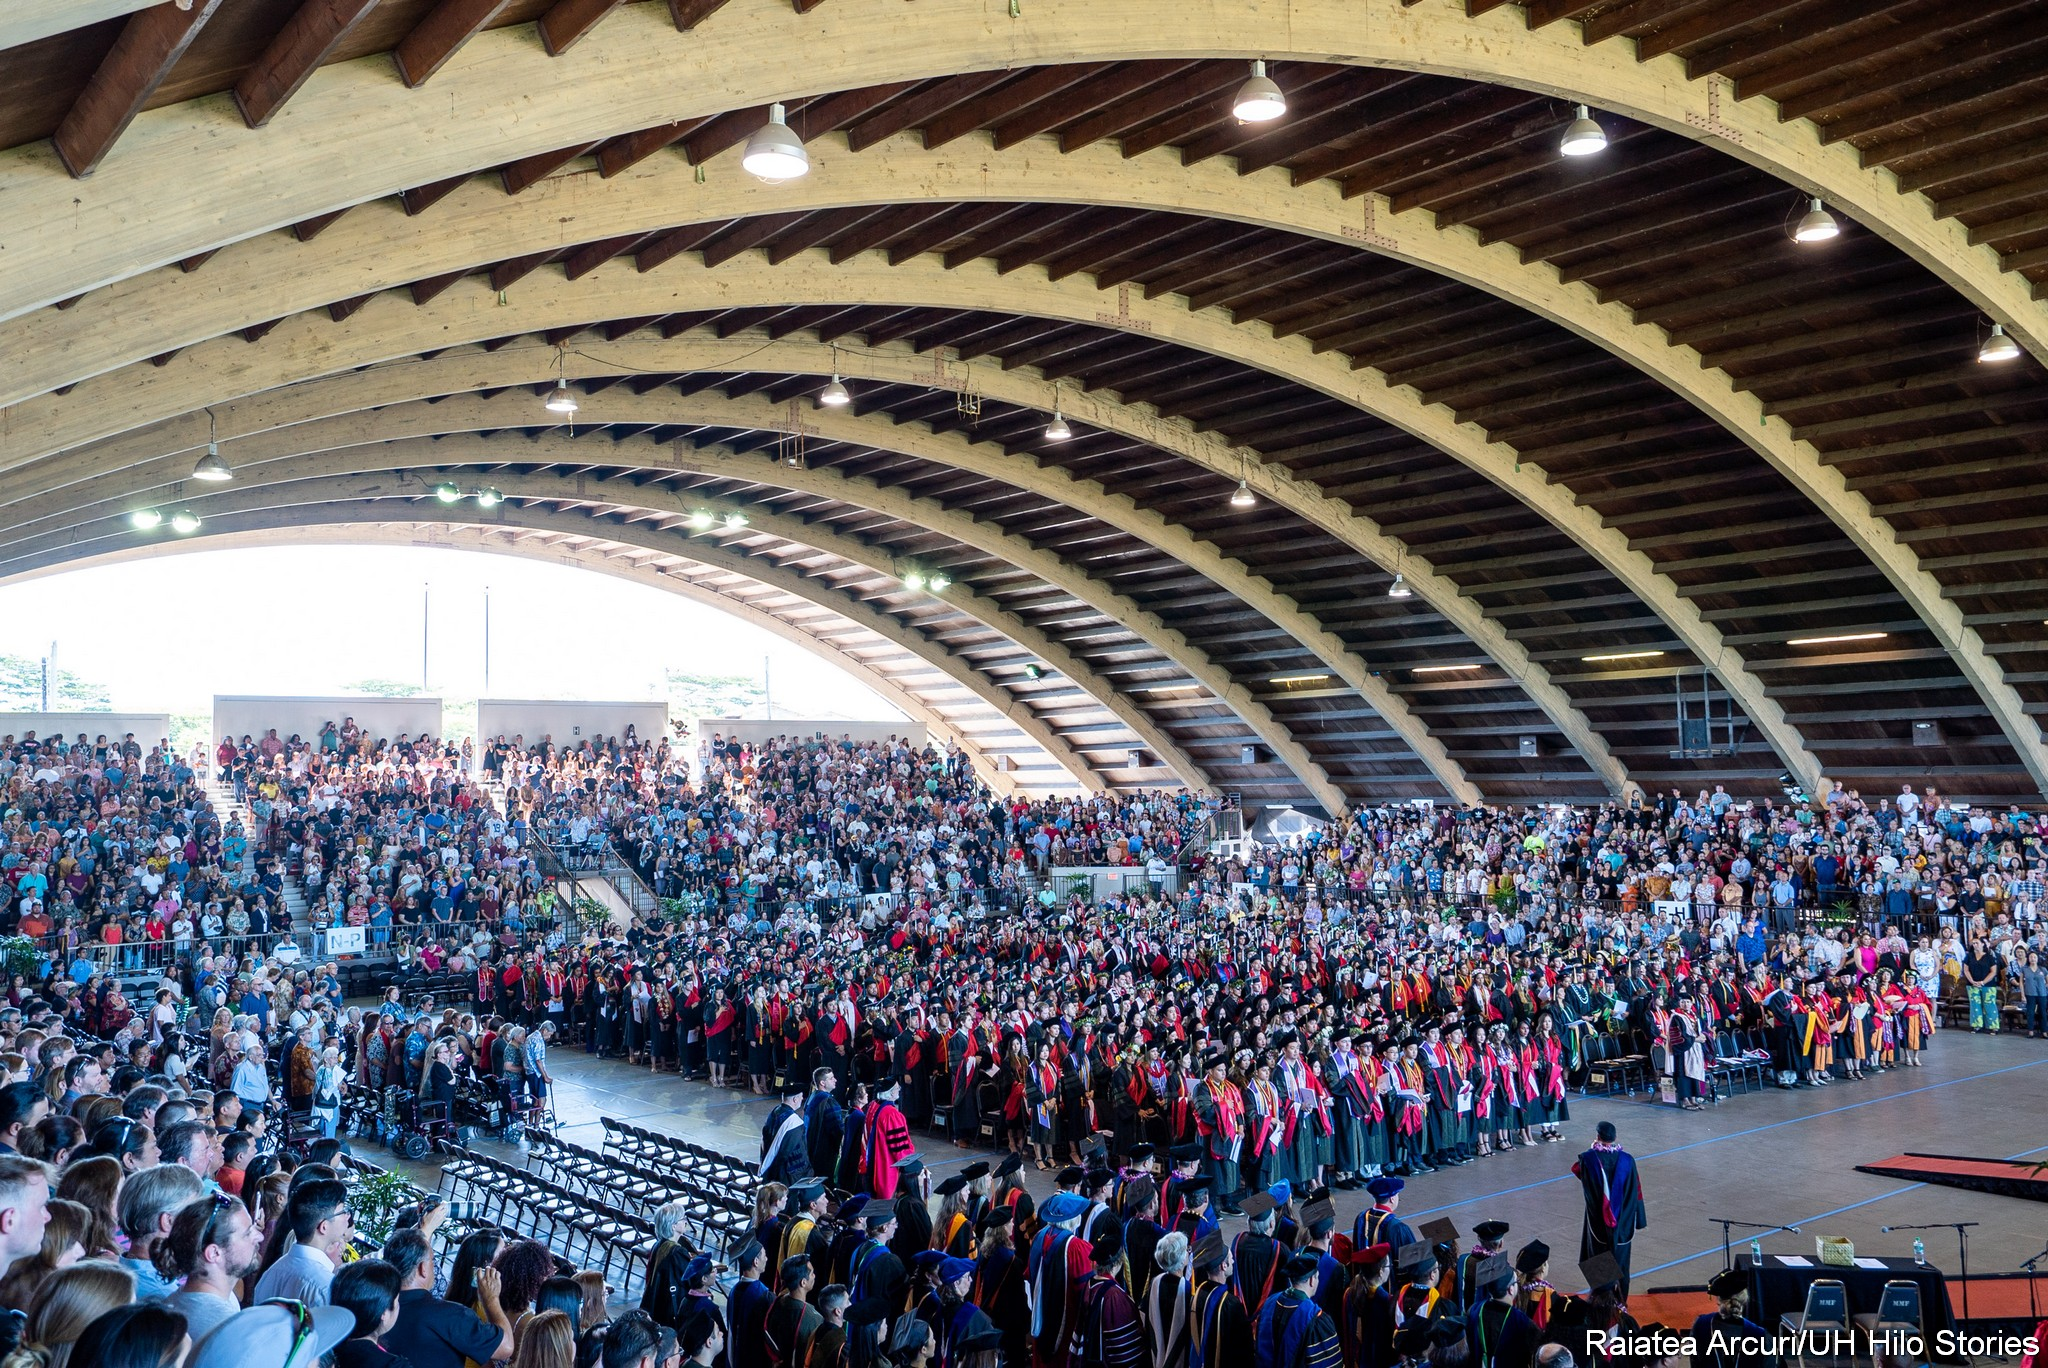 Wide view of venue with large arching ceiling and graduates standing at their seats.